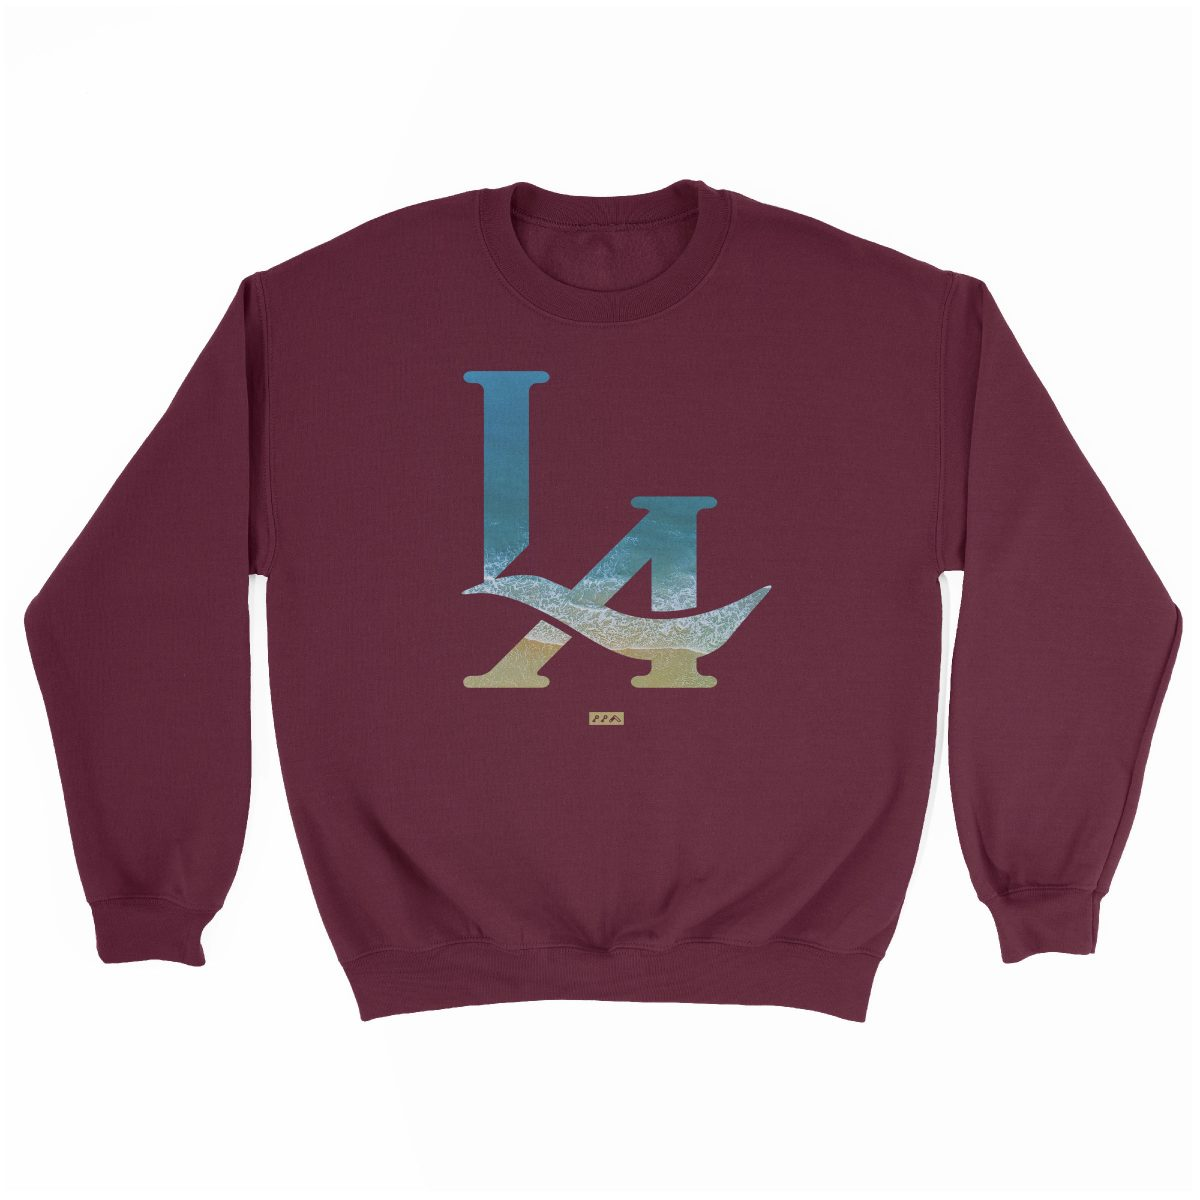 LA logo los angeles hermosa beach sweatshirt in maroon at kikicutt.com